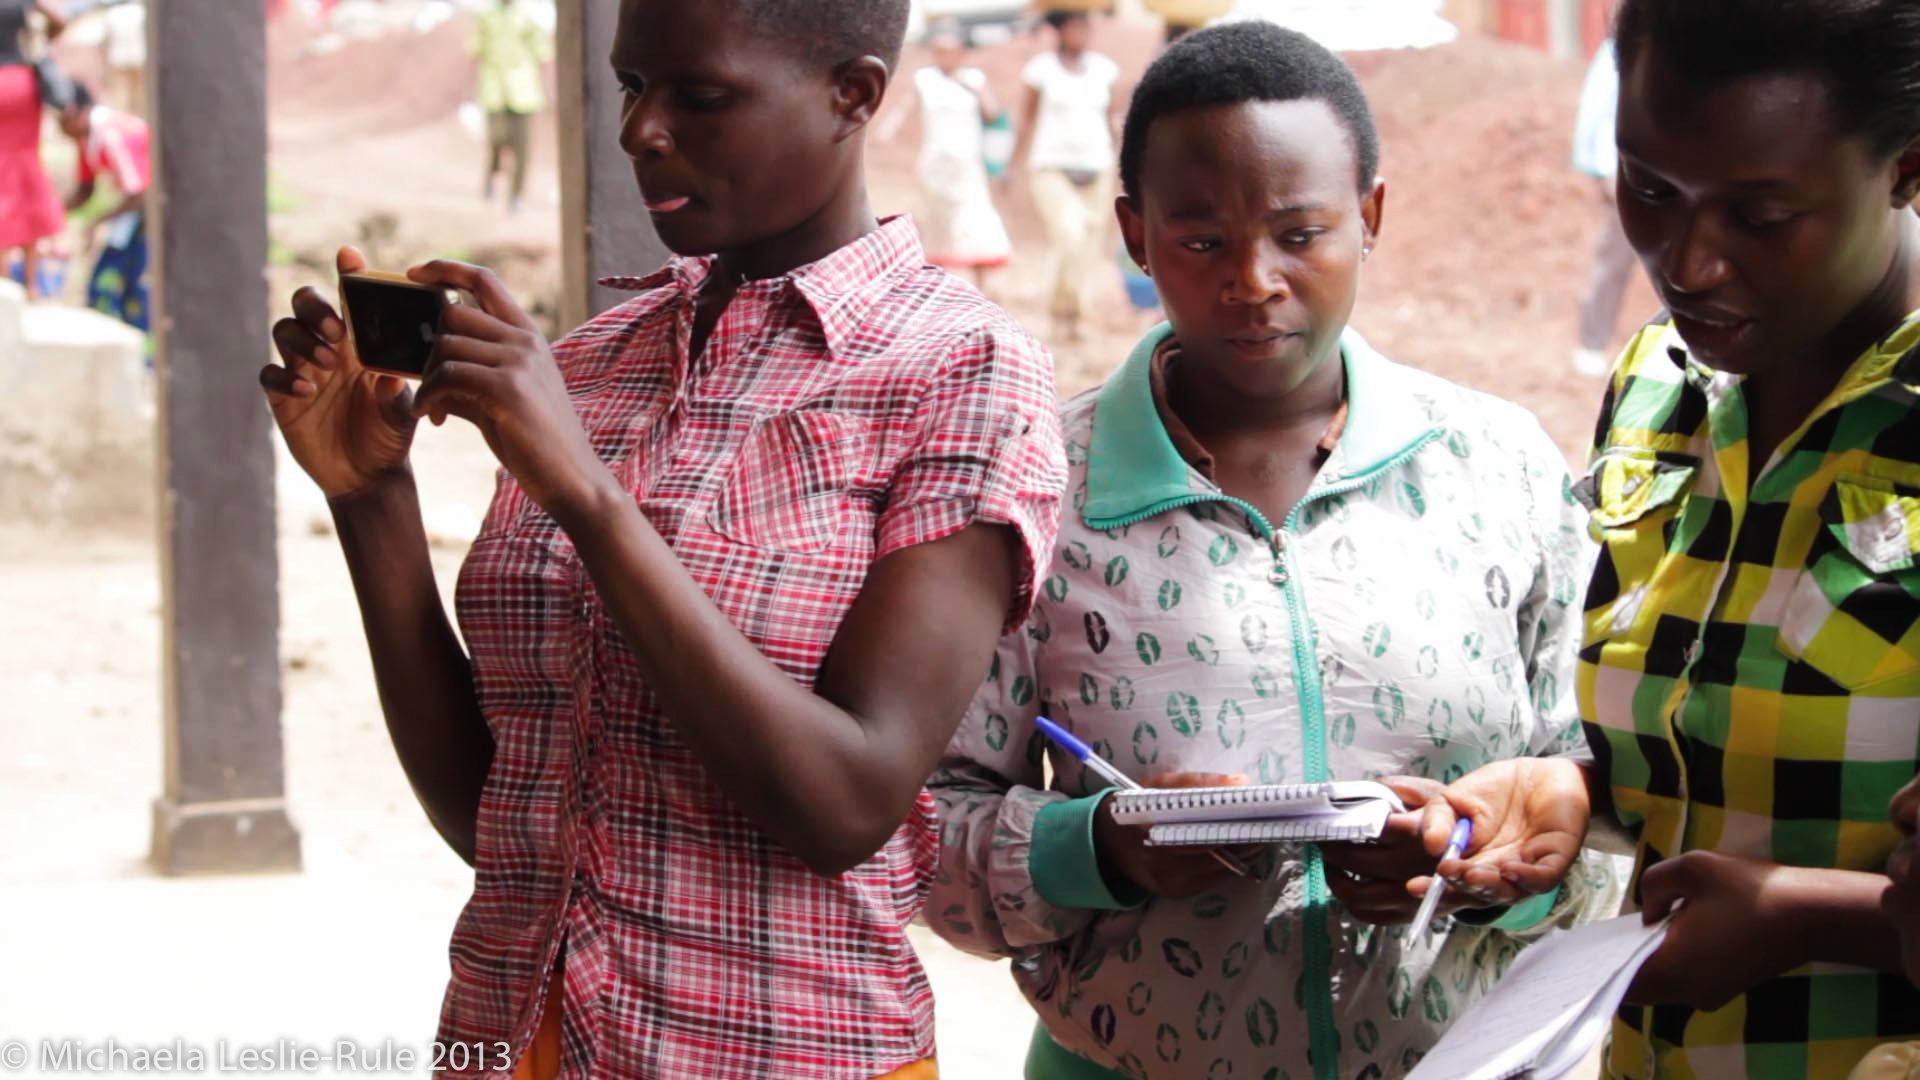 Three African girls group together. One is looking at her iPhone and two are holding notepads and pens.